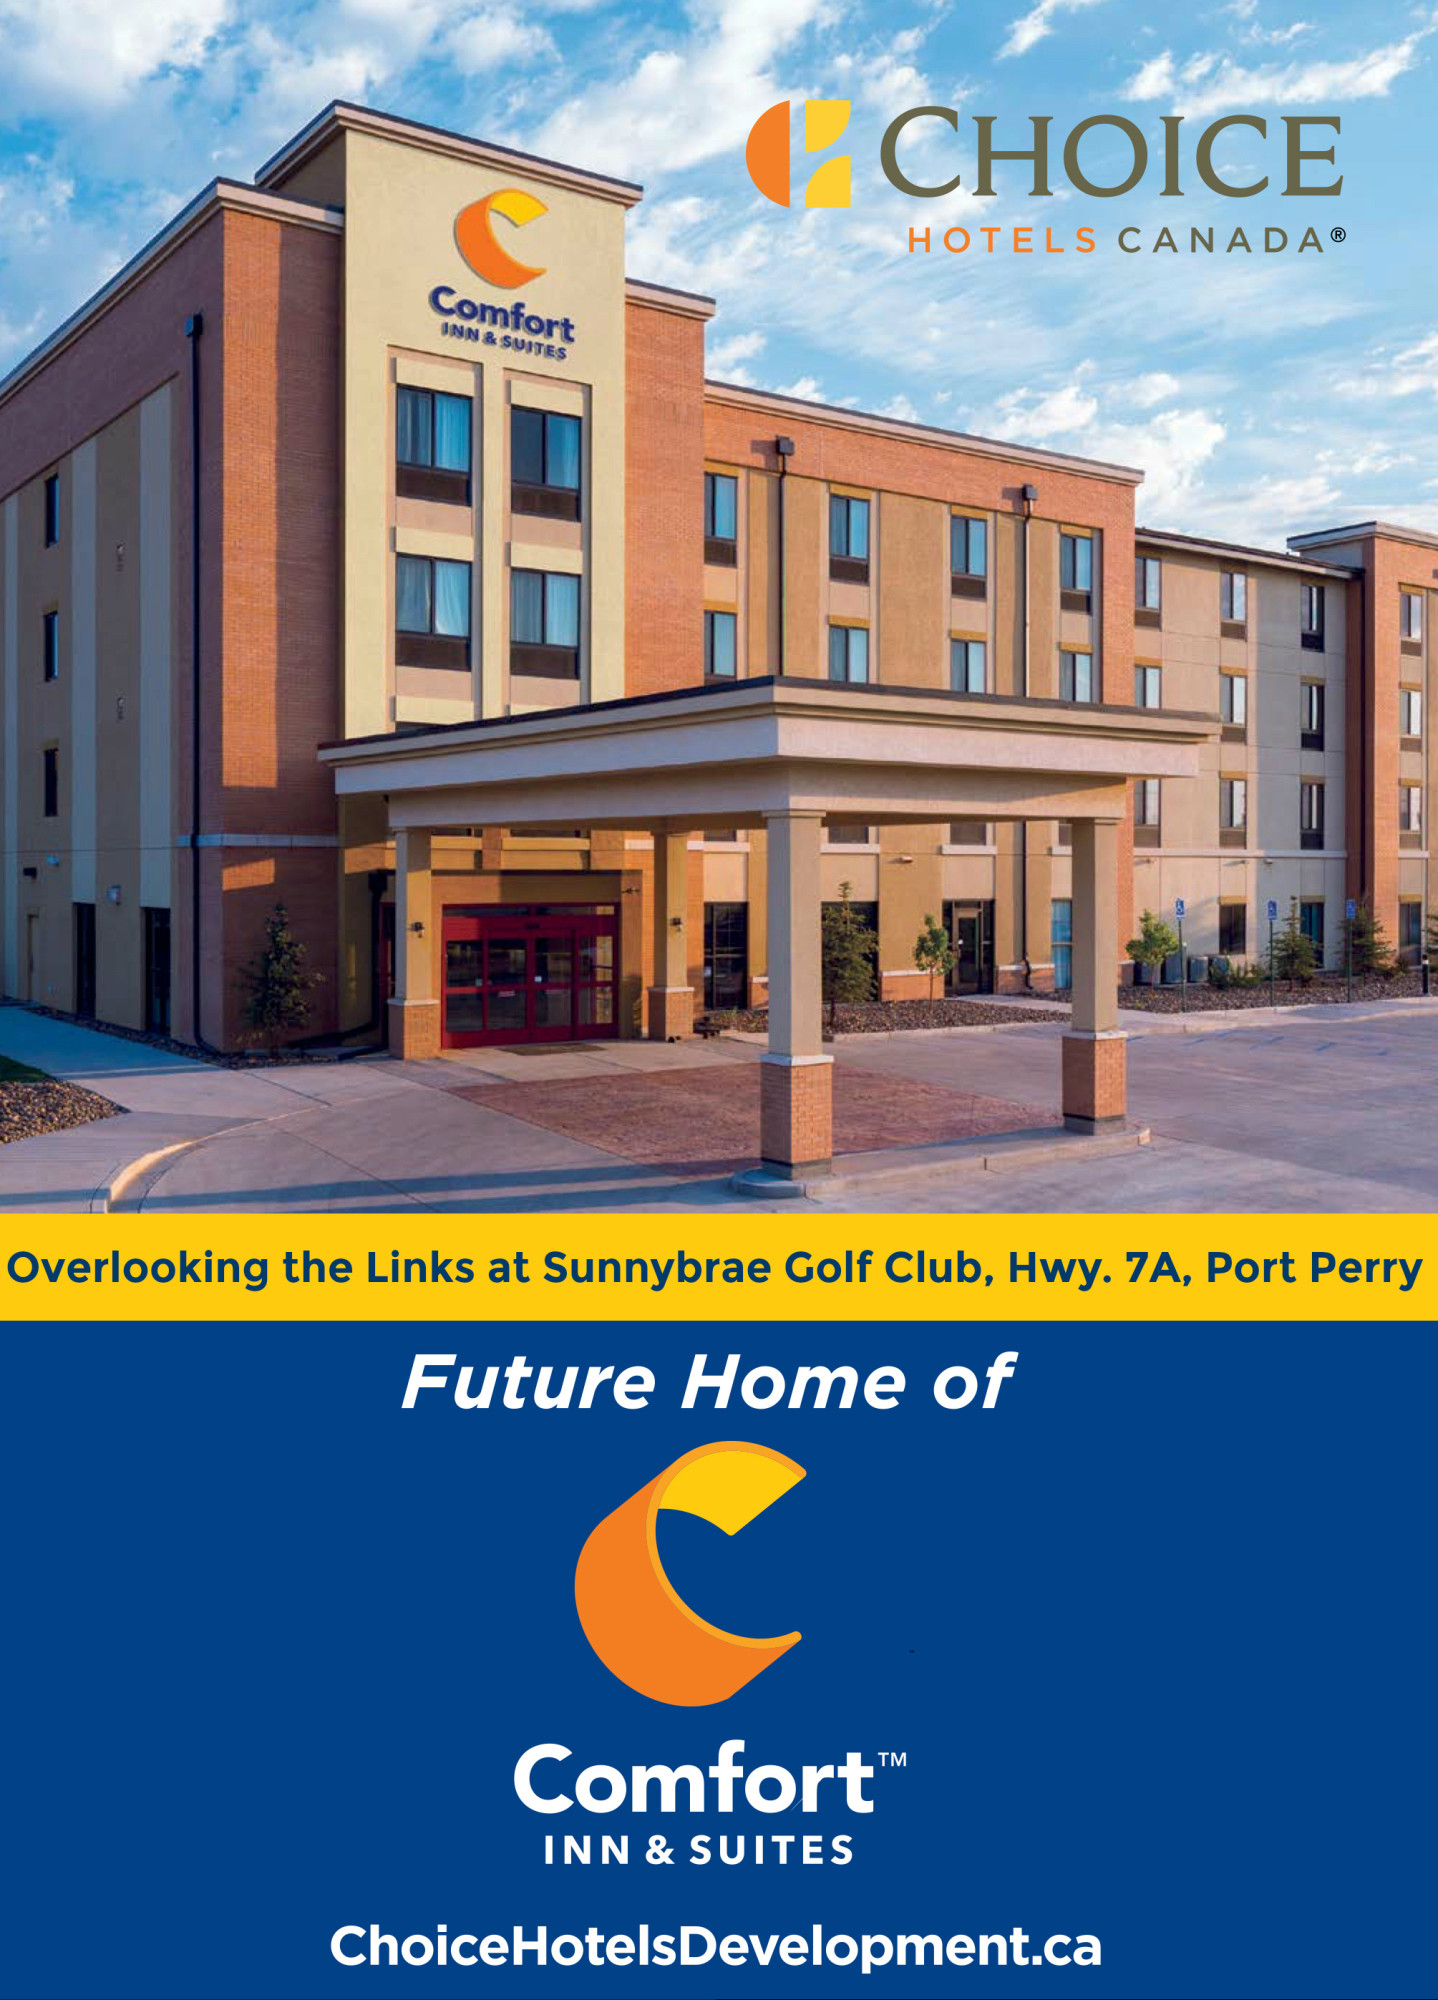 Sunnybrae Golf Club brings Comfort Inn & Suites Hotel to Port Perry!